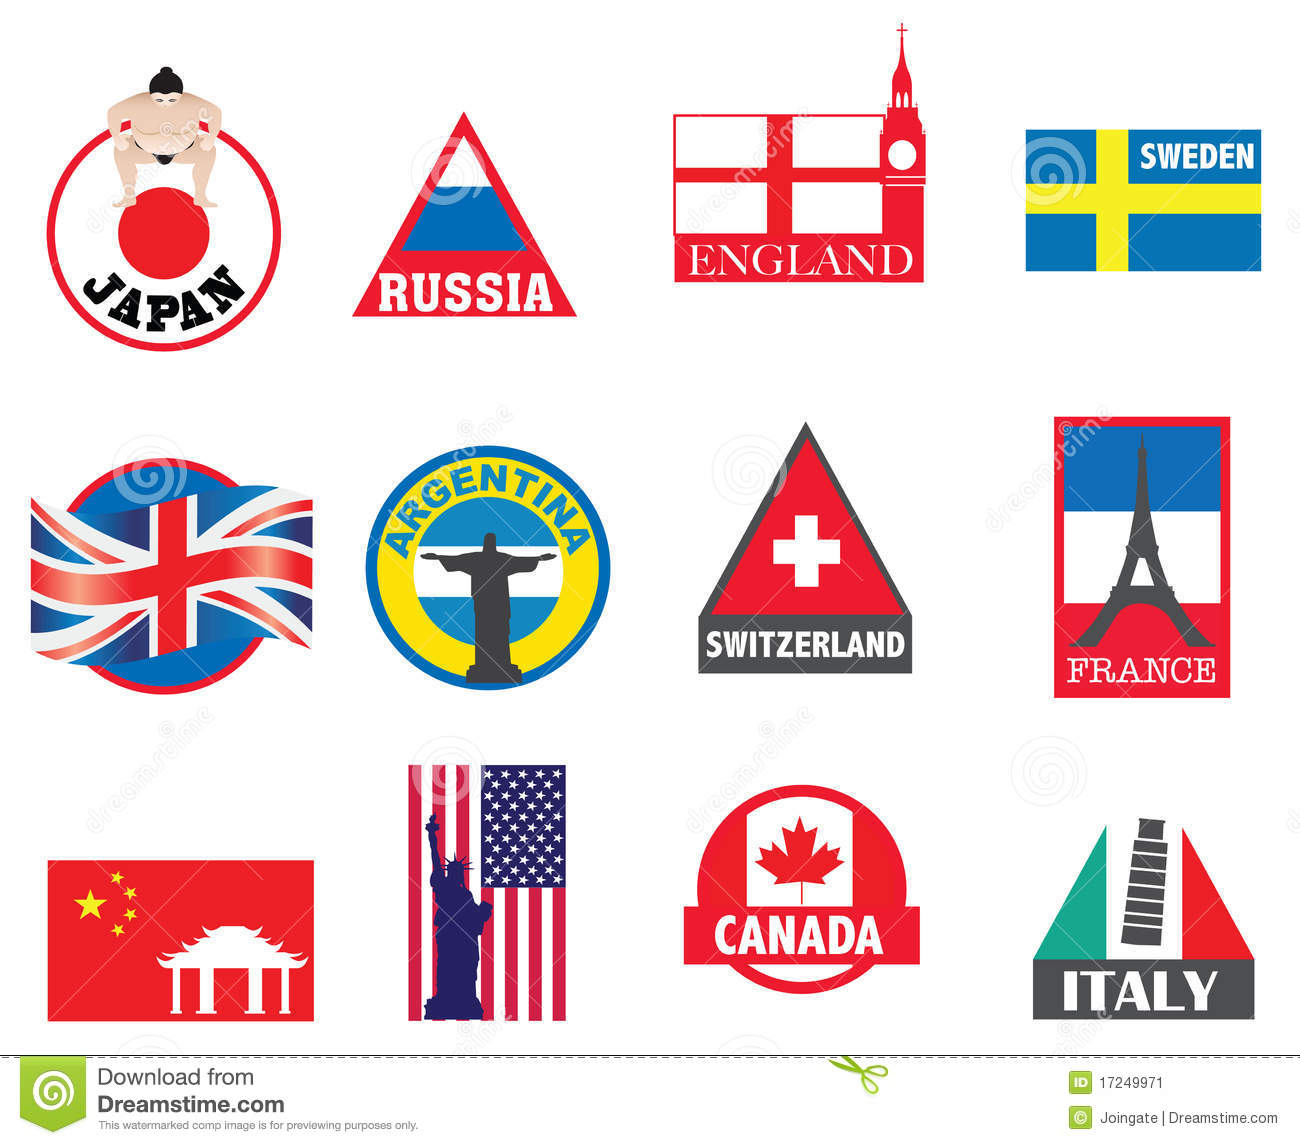 Country symbols flags and sticker designs stock vector country symbols flags and sticker designs biocorpaavc